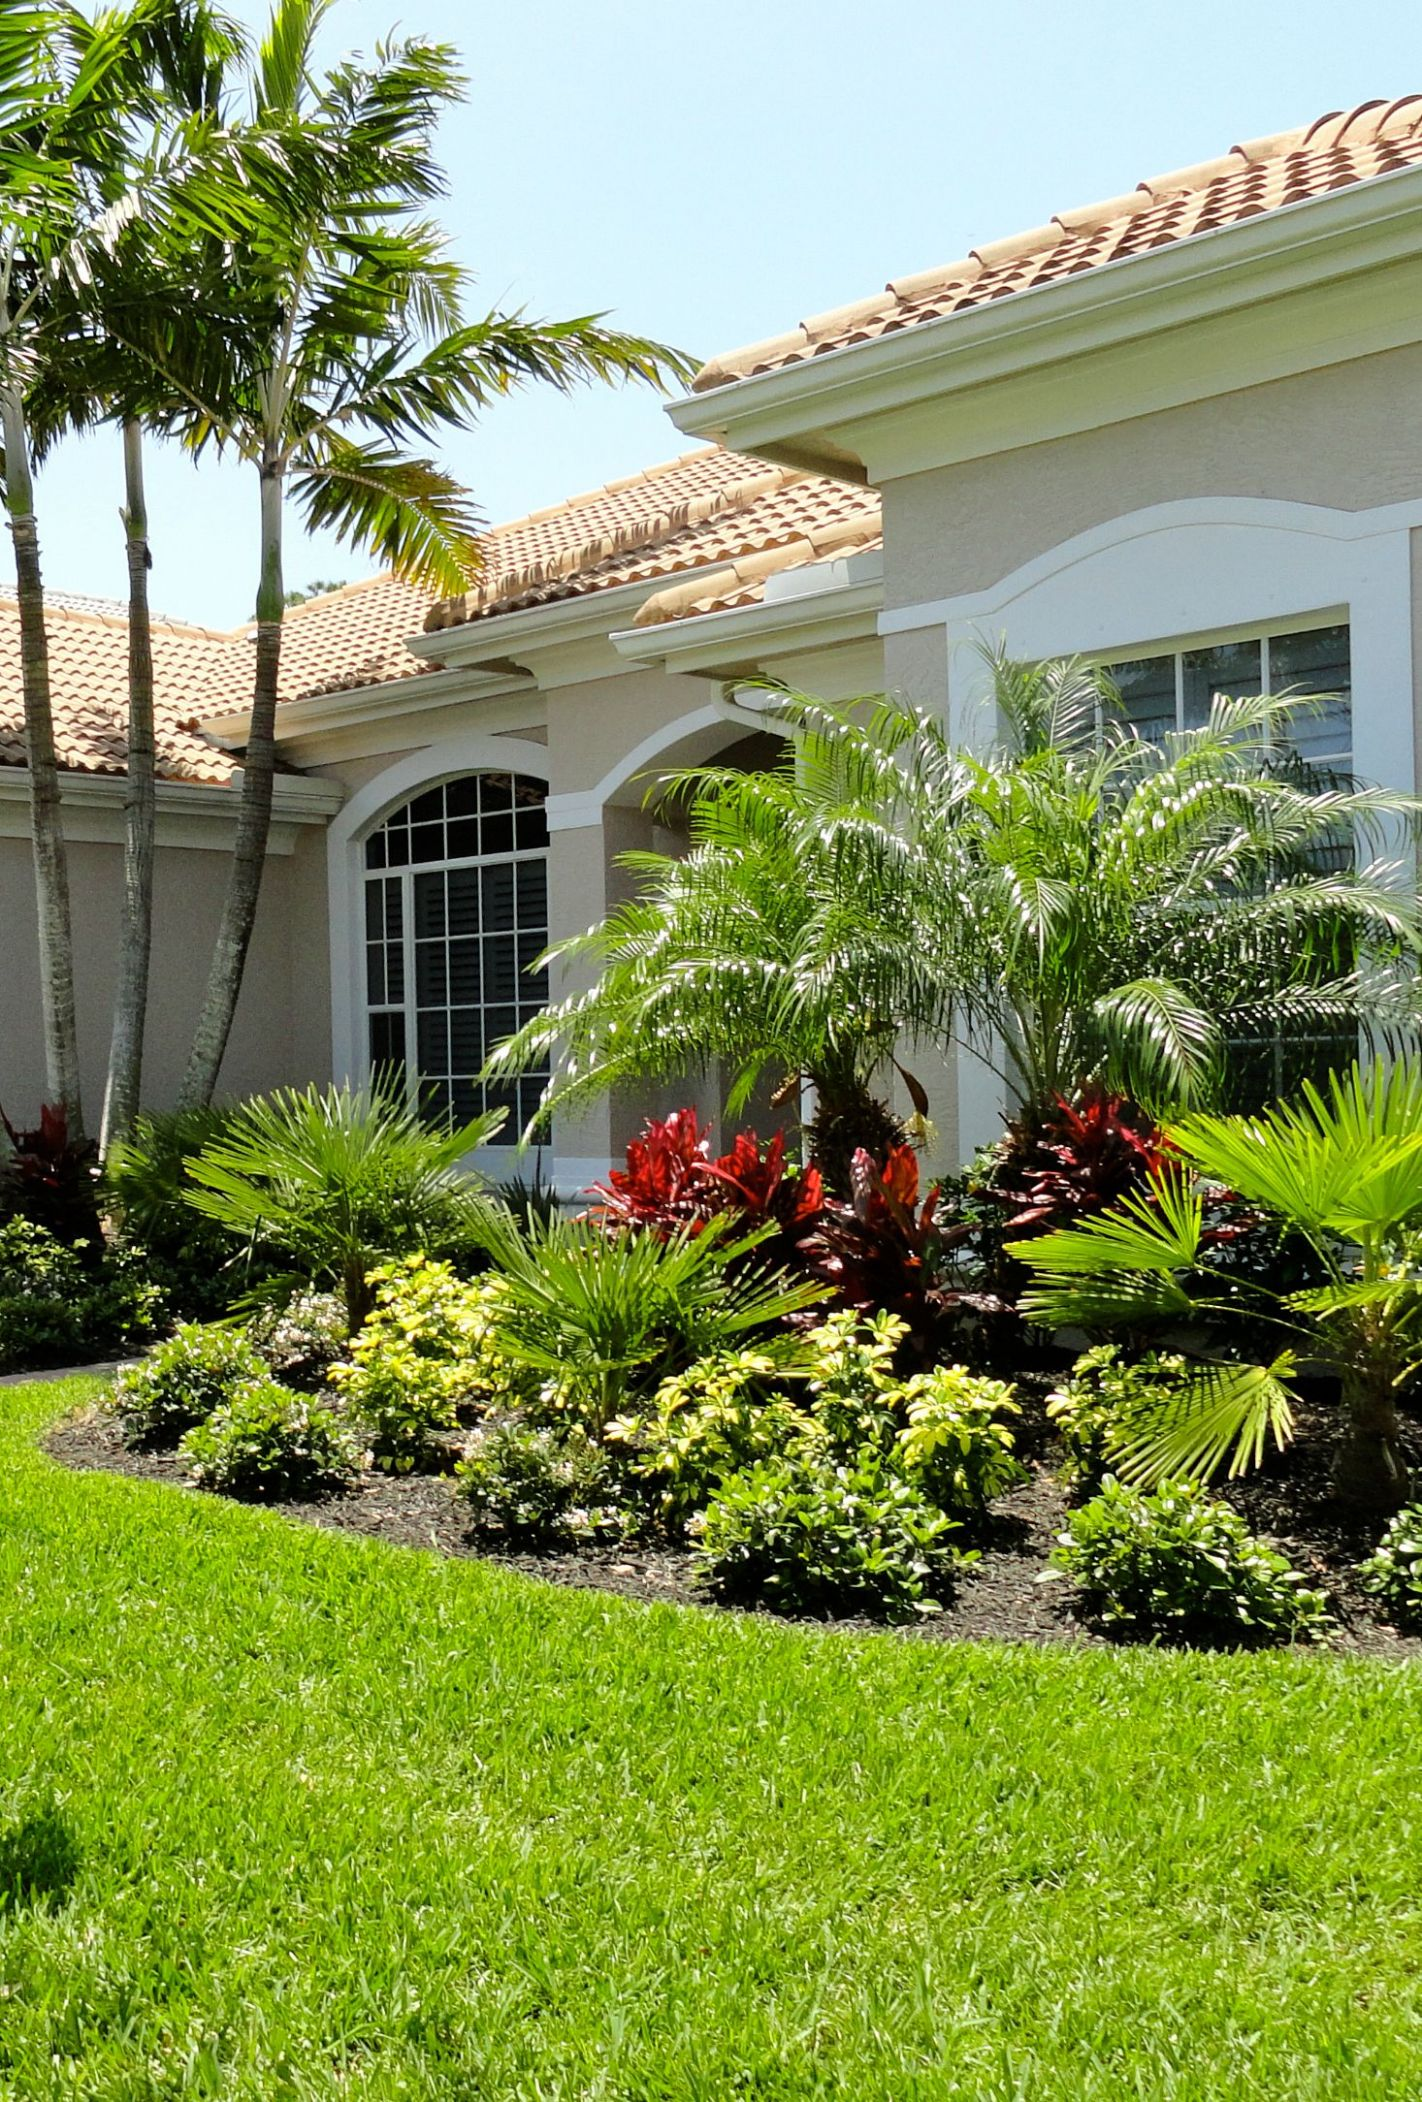 8 Landscaping Designs, Instructions Videos To Build The ..